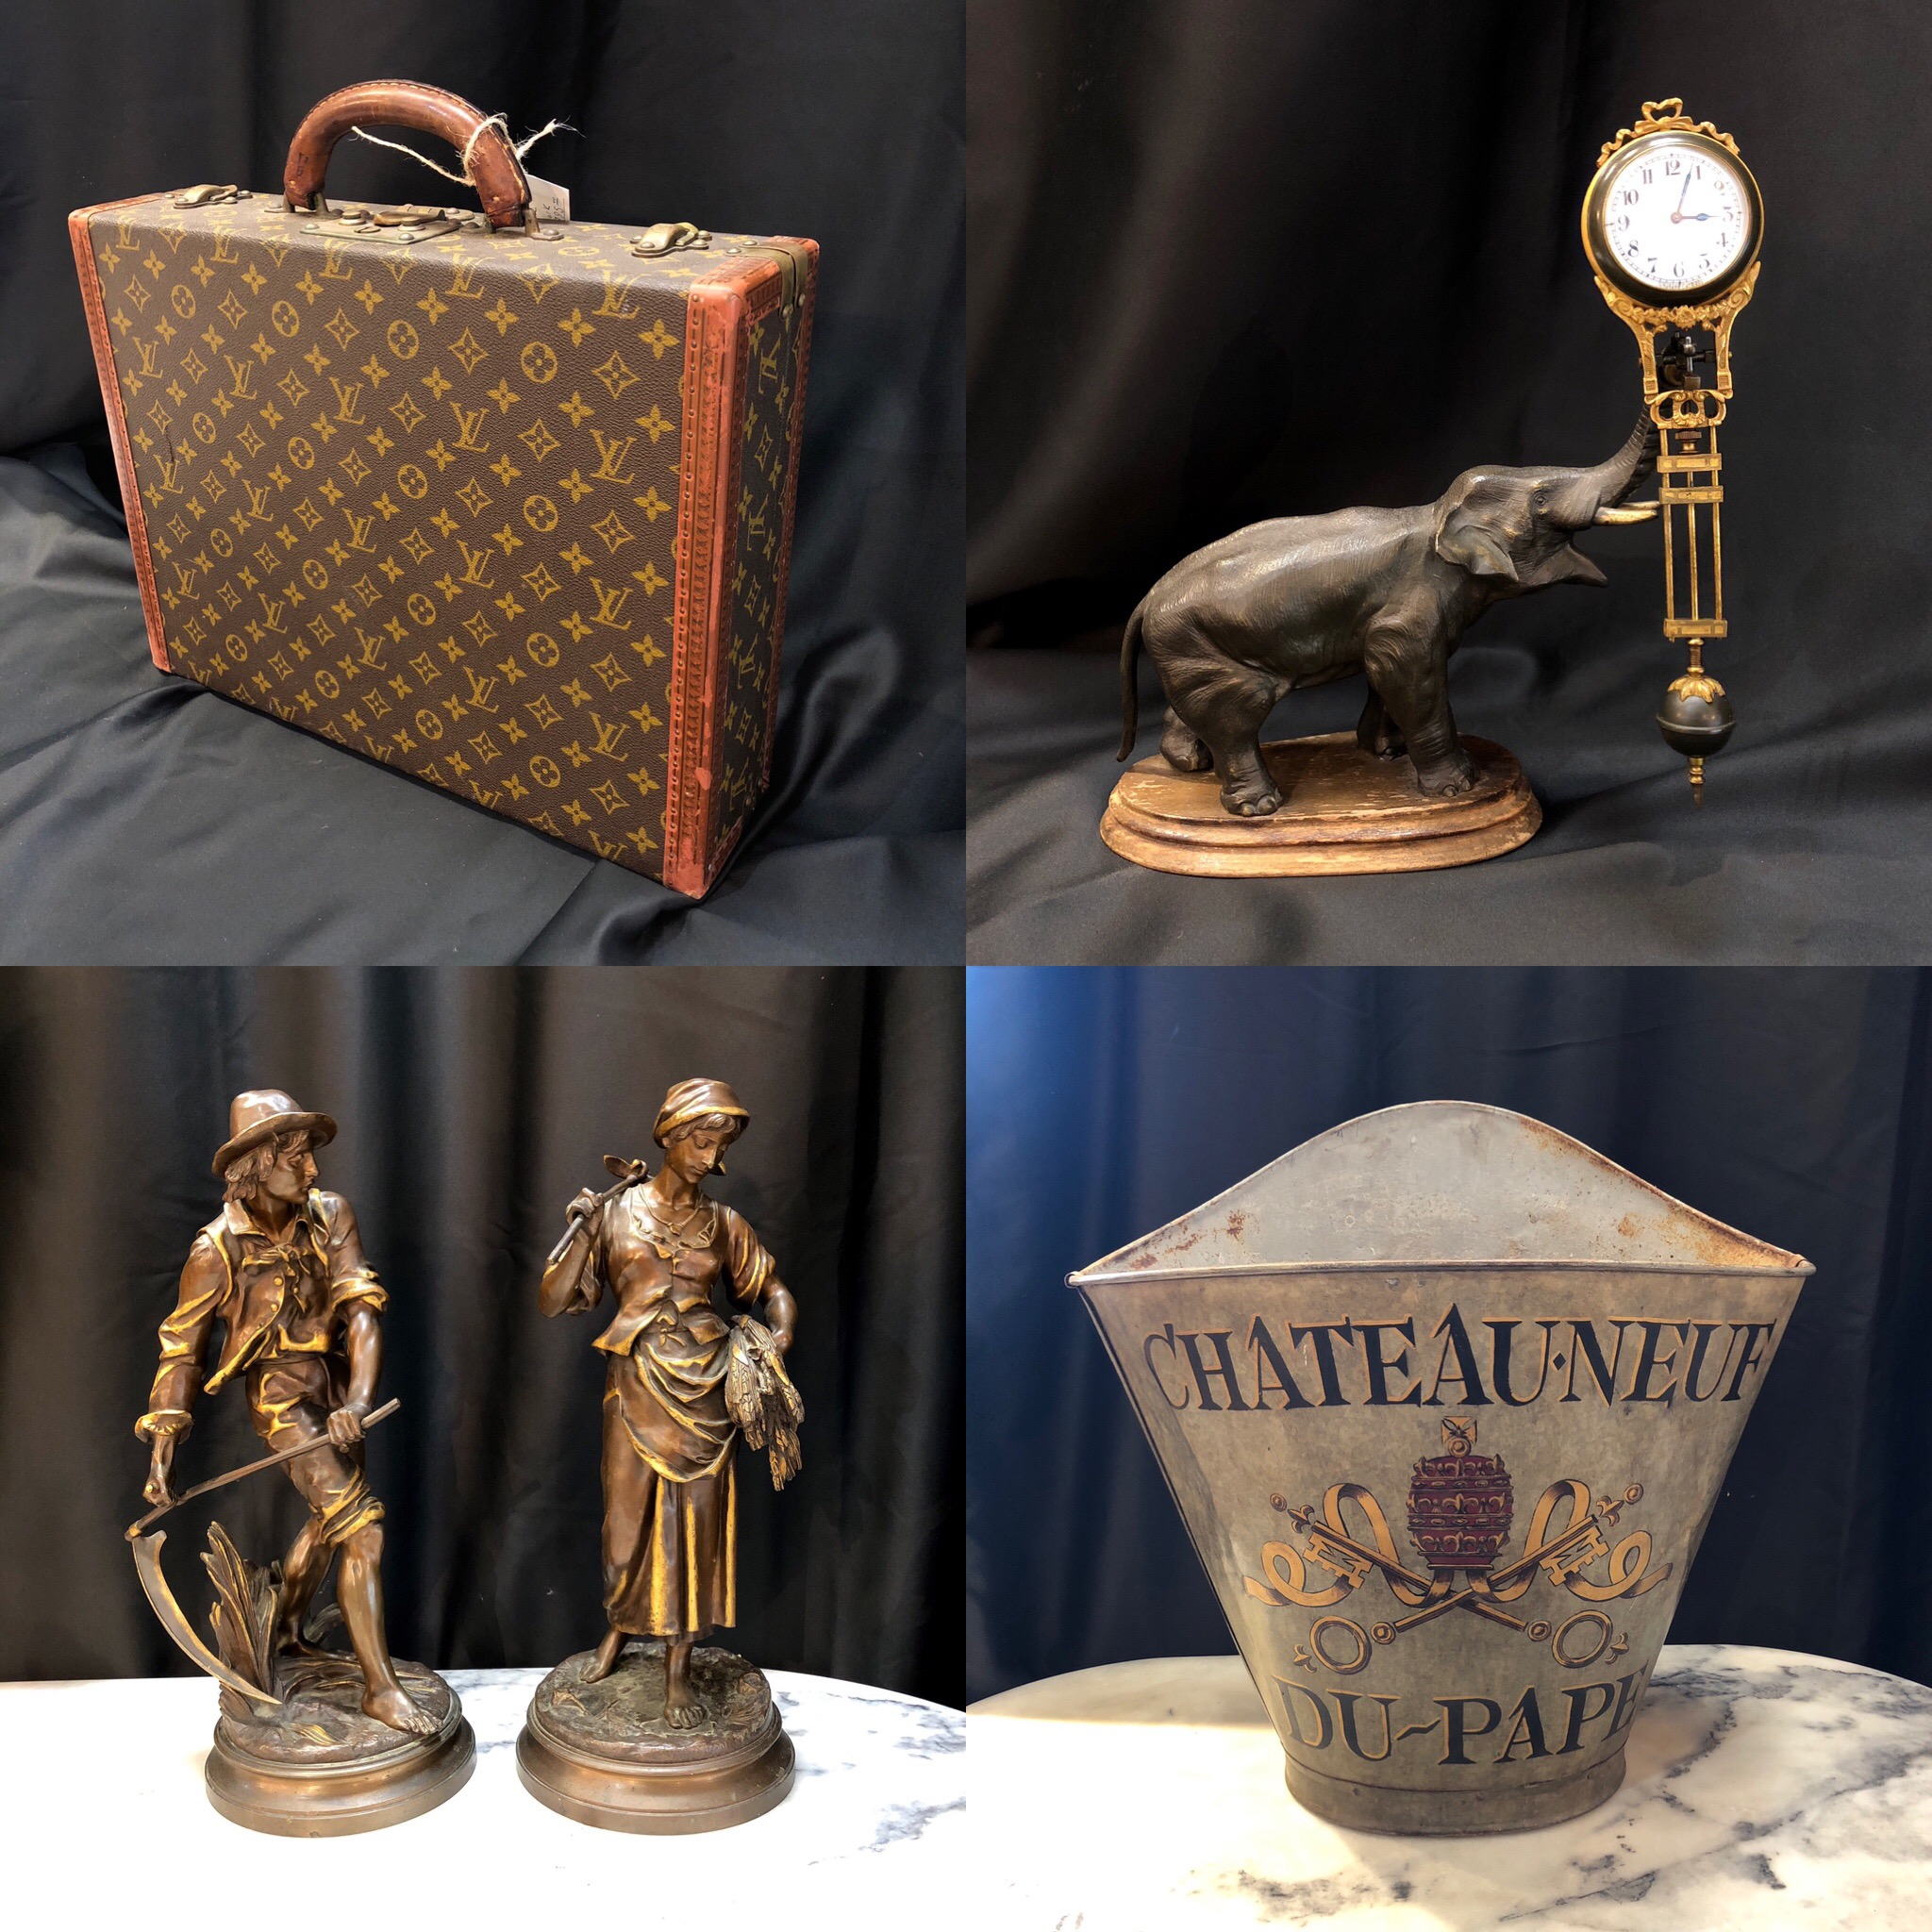 Just a few pieces being auctioned December 16th at 12:00pm on invaluable.com